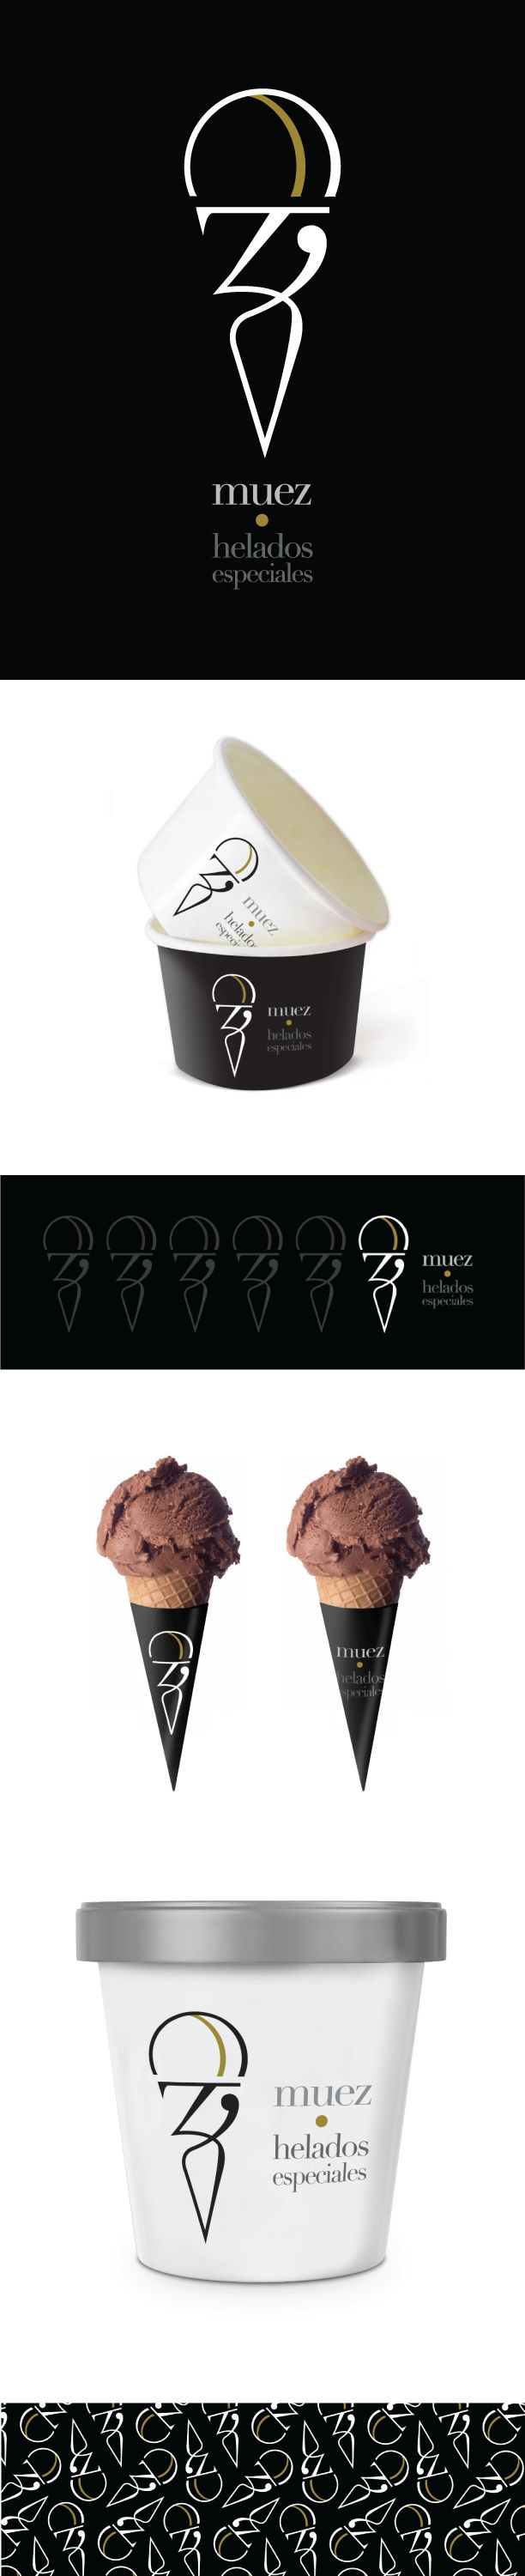 Muez por latte.com.mx #food #icecream #identity #graphicdesign #logo #mexico #branding